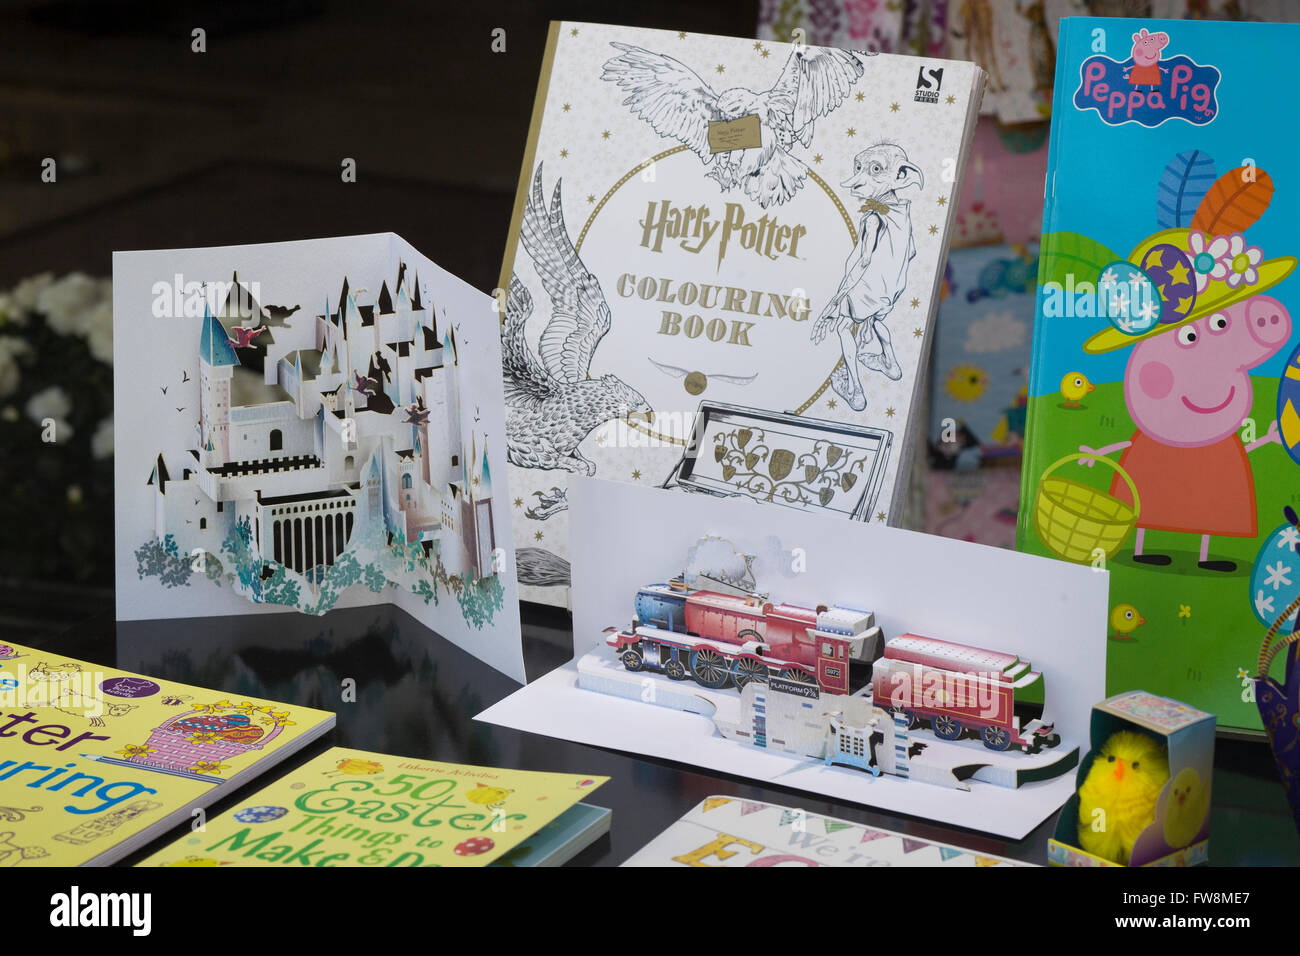 J K Rowling Harry Potter Coloring Books And Pop Up Books Stock